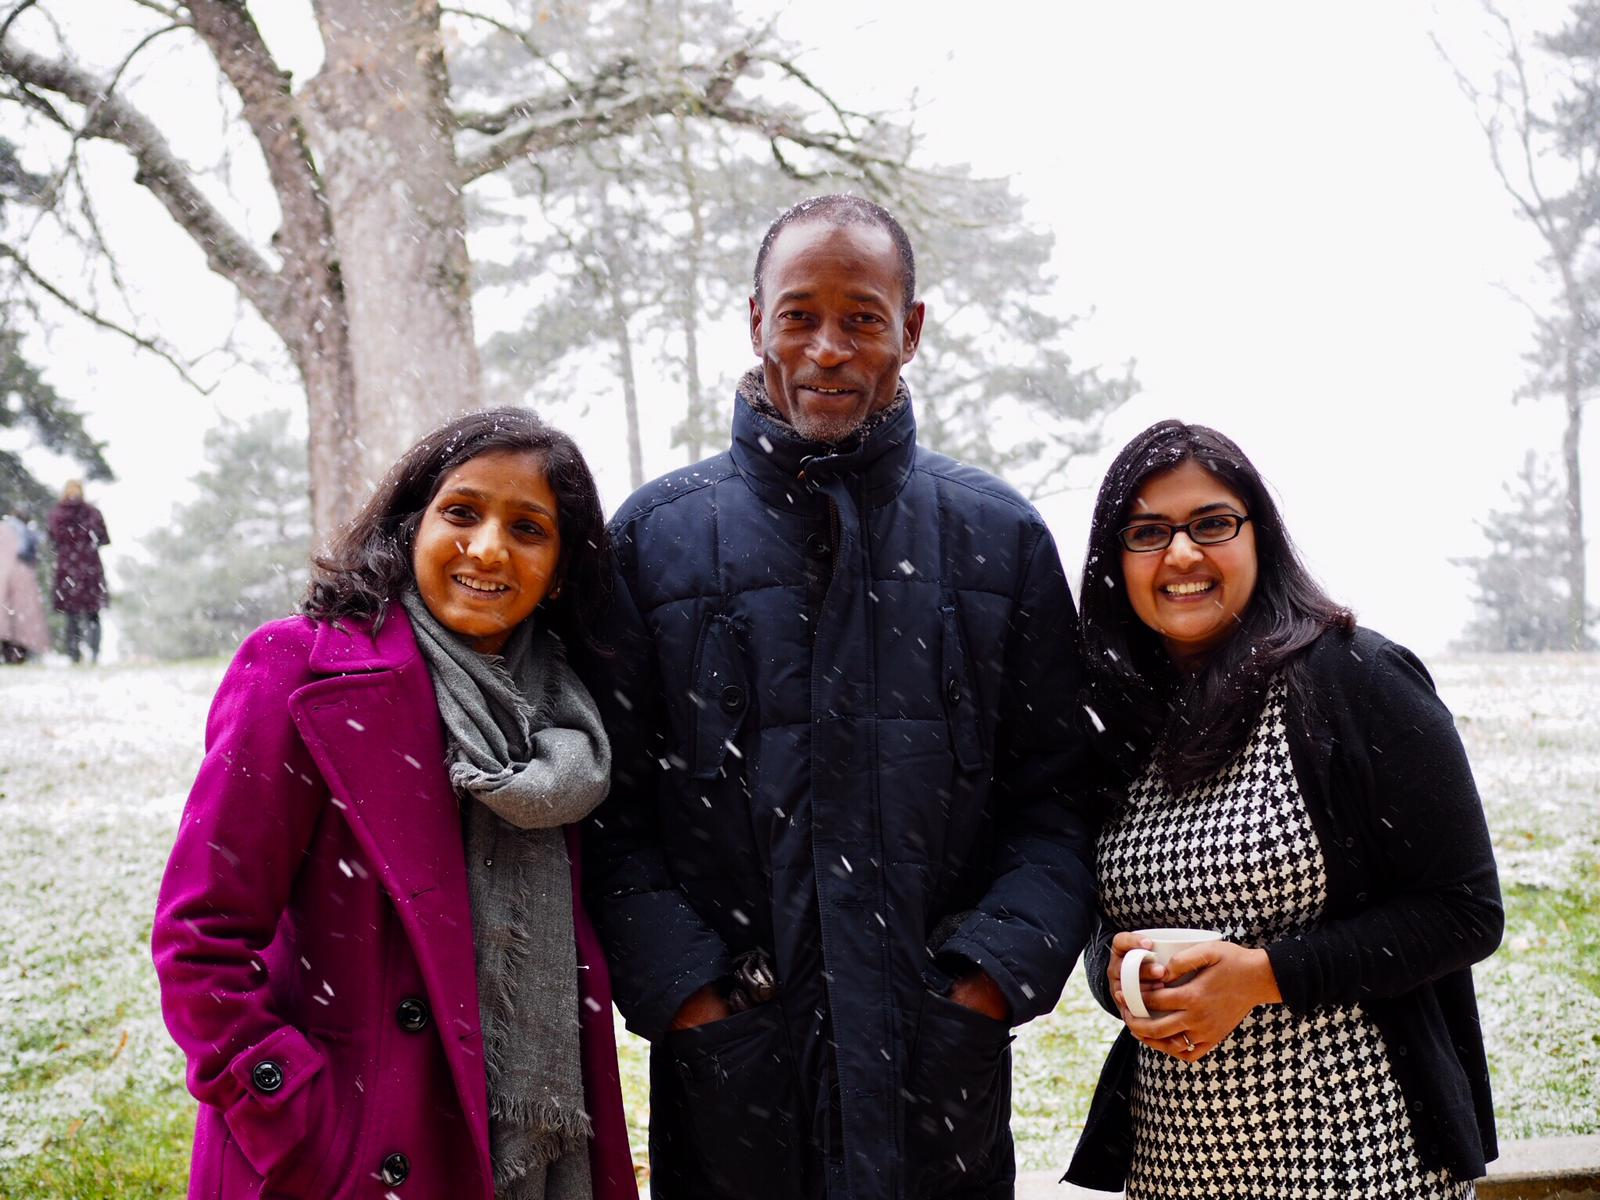 Dr. Francisco Songane with fellow 'Disrupting Global Health Narratives' participants, Dr. Purnima Menon of the International Food Policy Research Institute and Sumegha Asthana, doctoral candidate at Jawaharlal Nehru University.